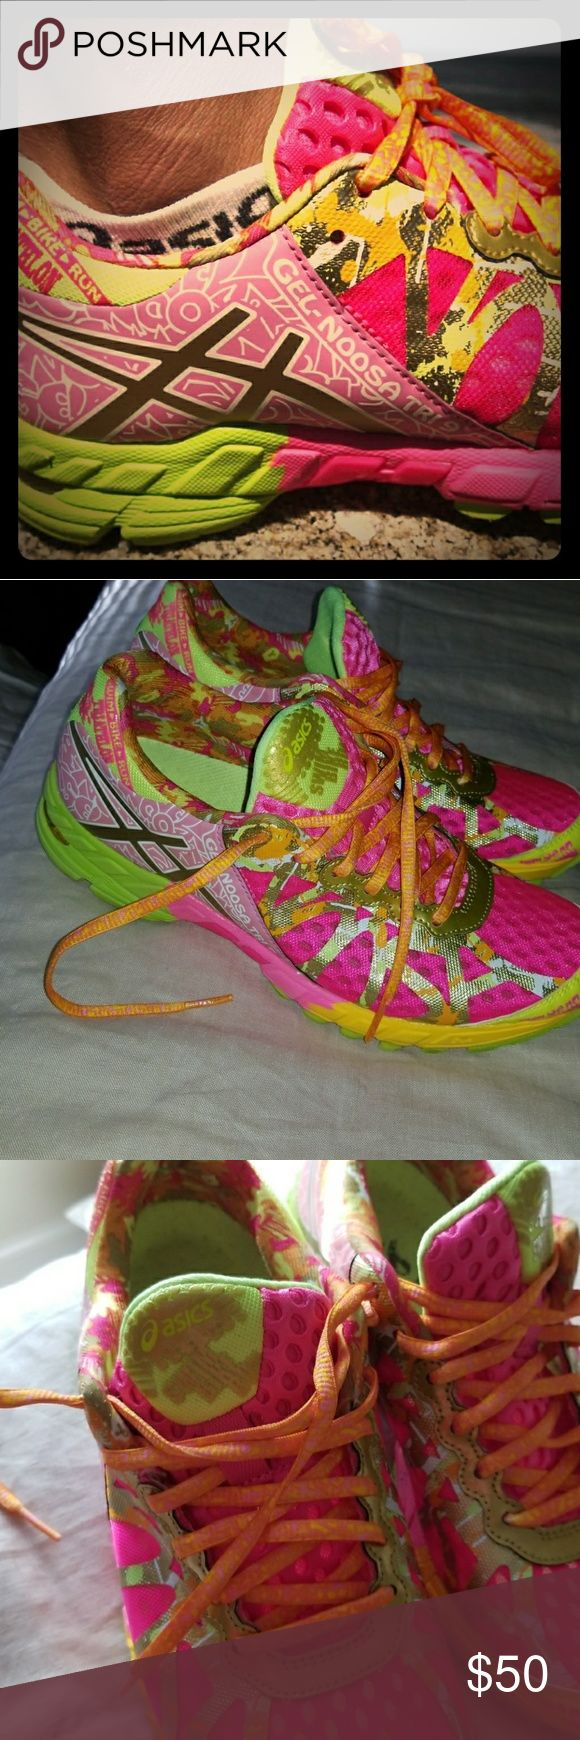 Like new Asics Gel Noosa breast cancer awareness Perfect condition other than the little label where your heel goes is slightly worn off. These have literally been worn twice so I'm not sure why that wore off. Very colorful, fun shoes and for a good cause. Asics Shoes Athletic Shoes